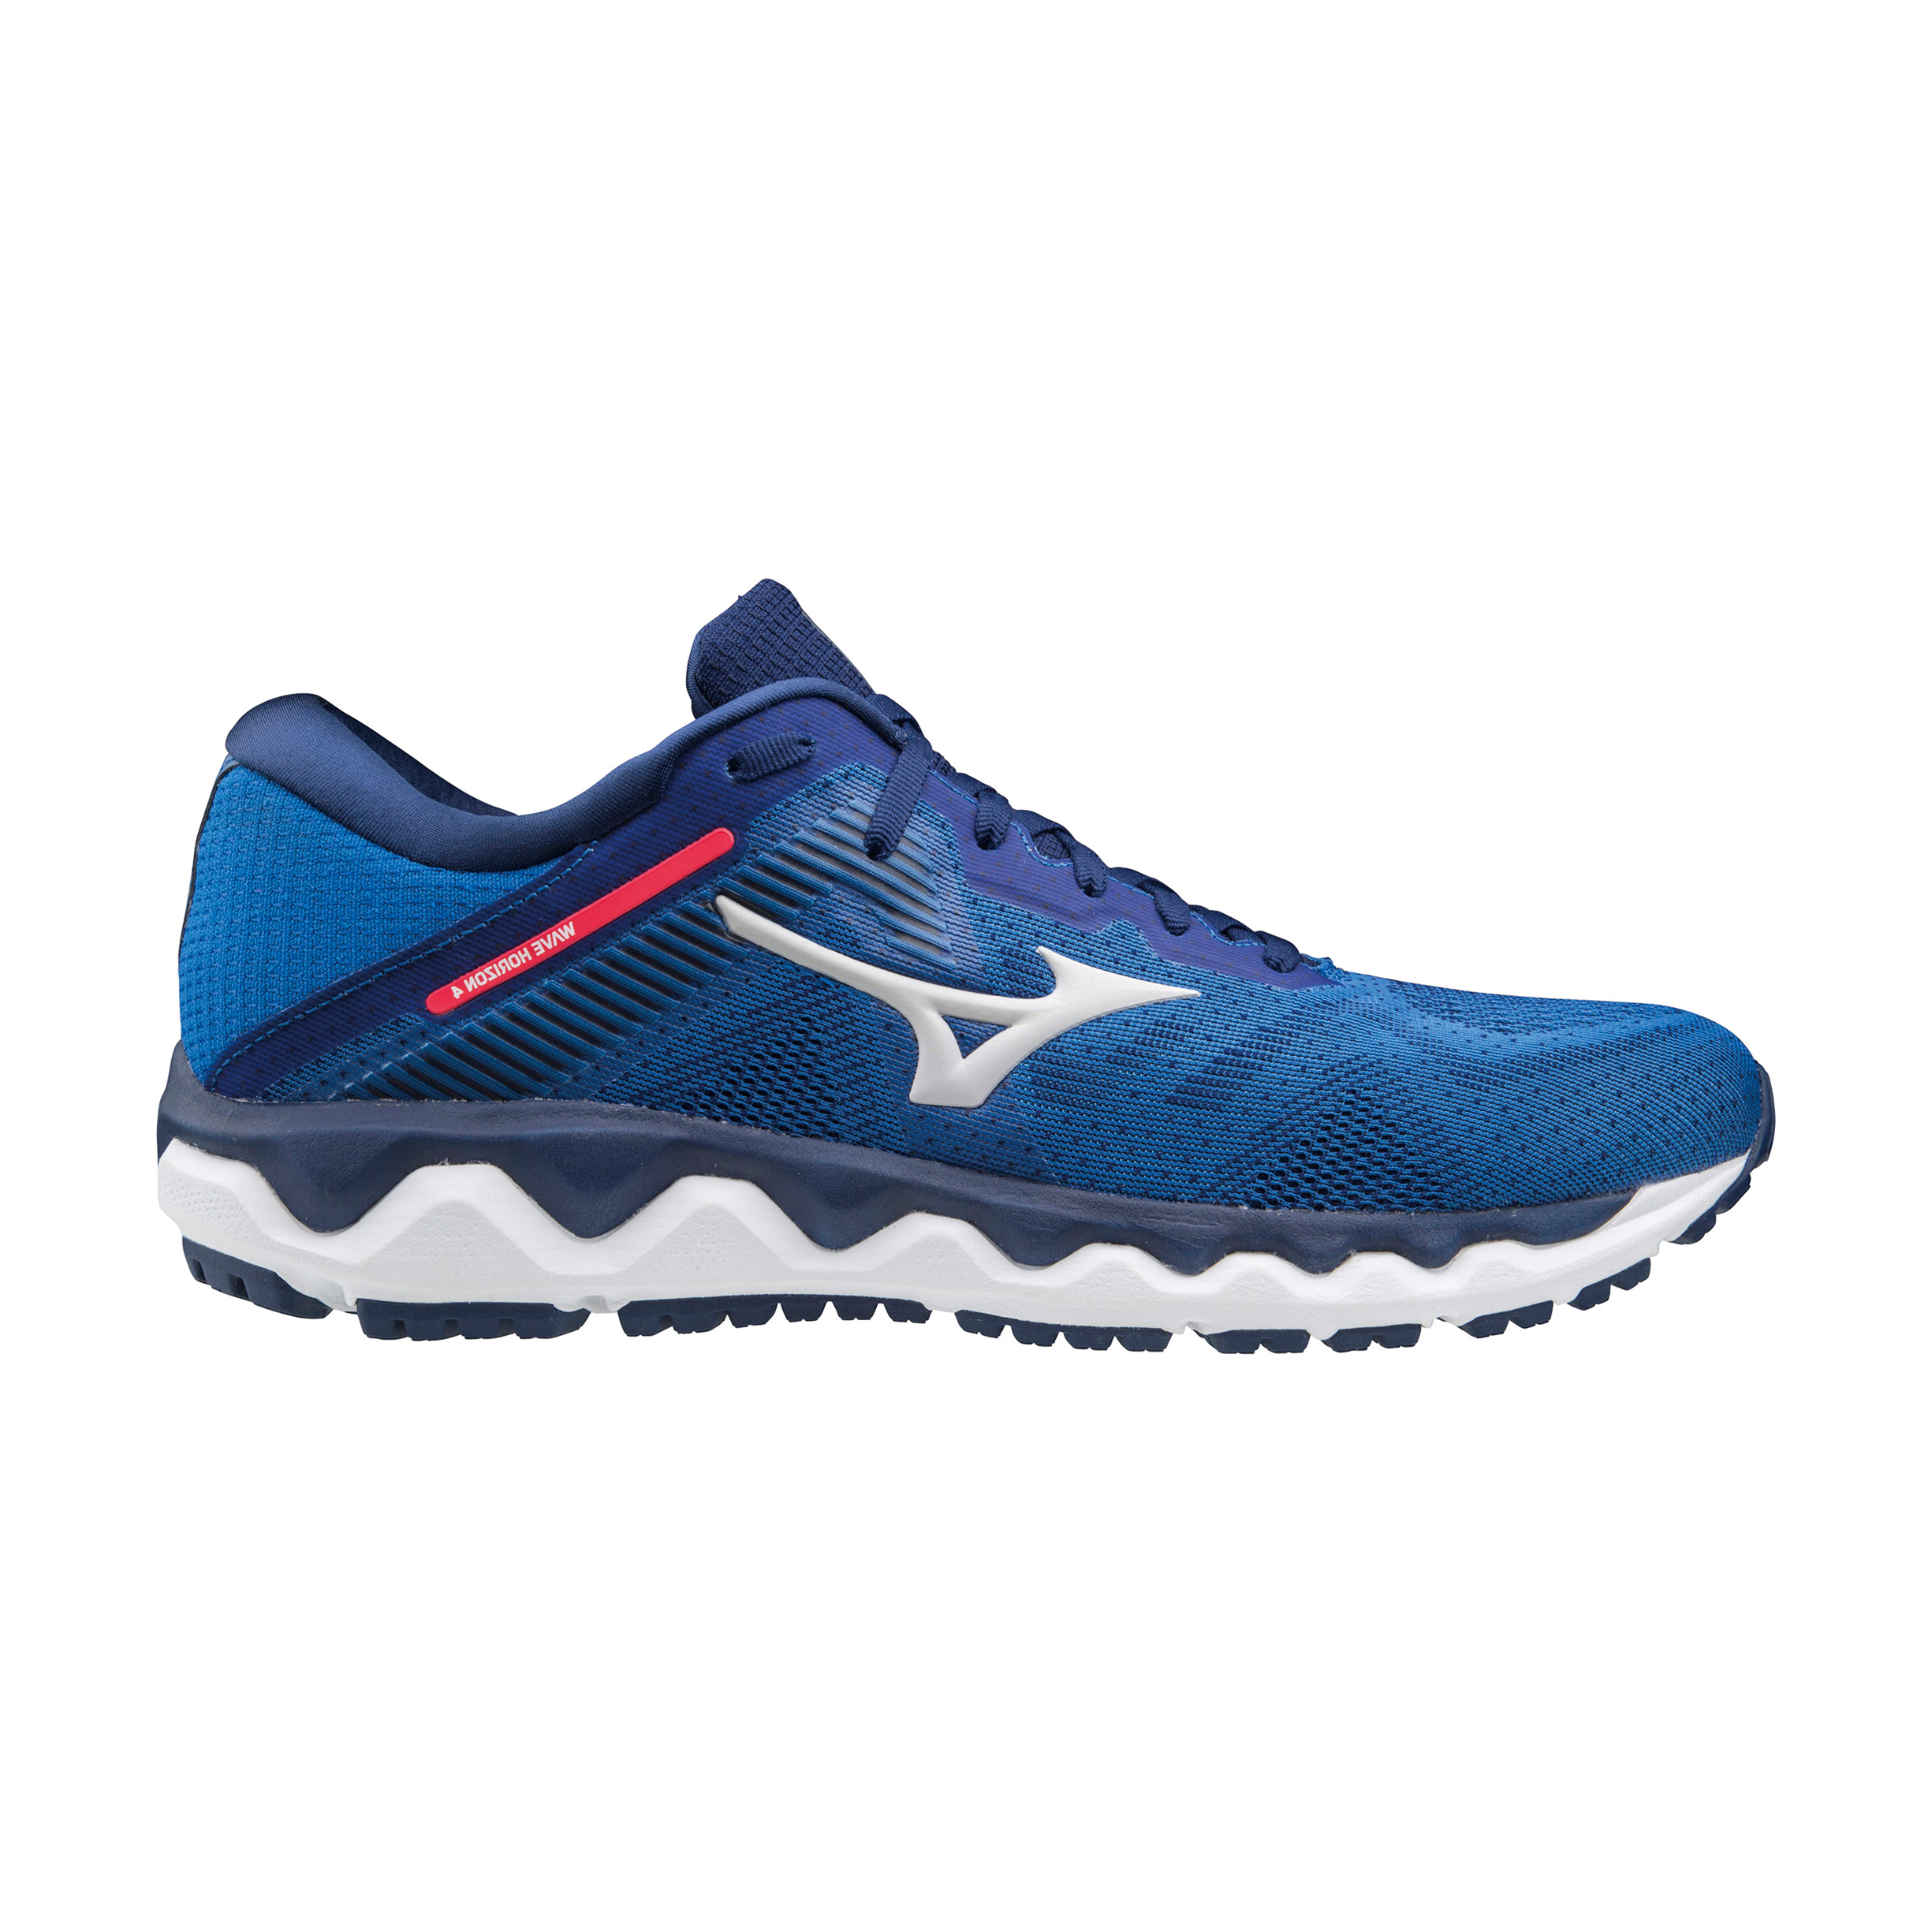 Men's Mizuno Wave Horizon 4